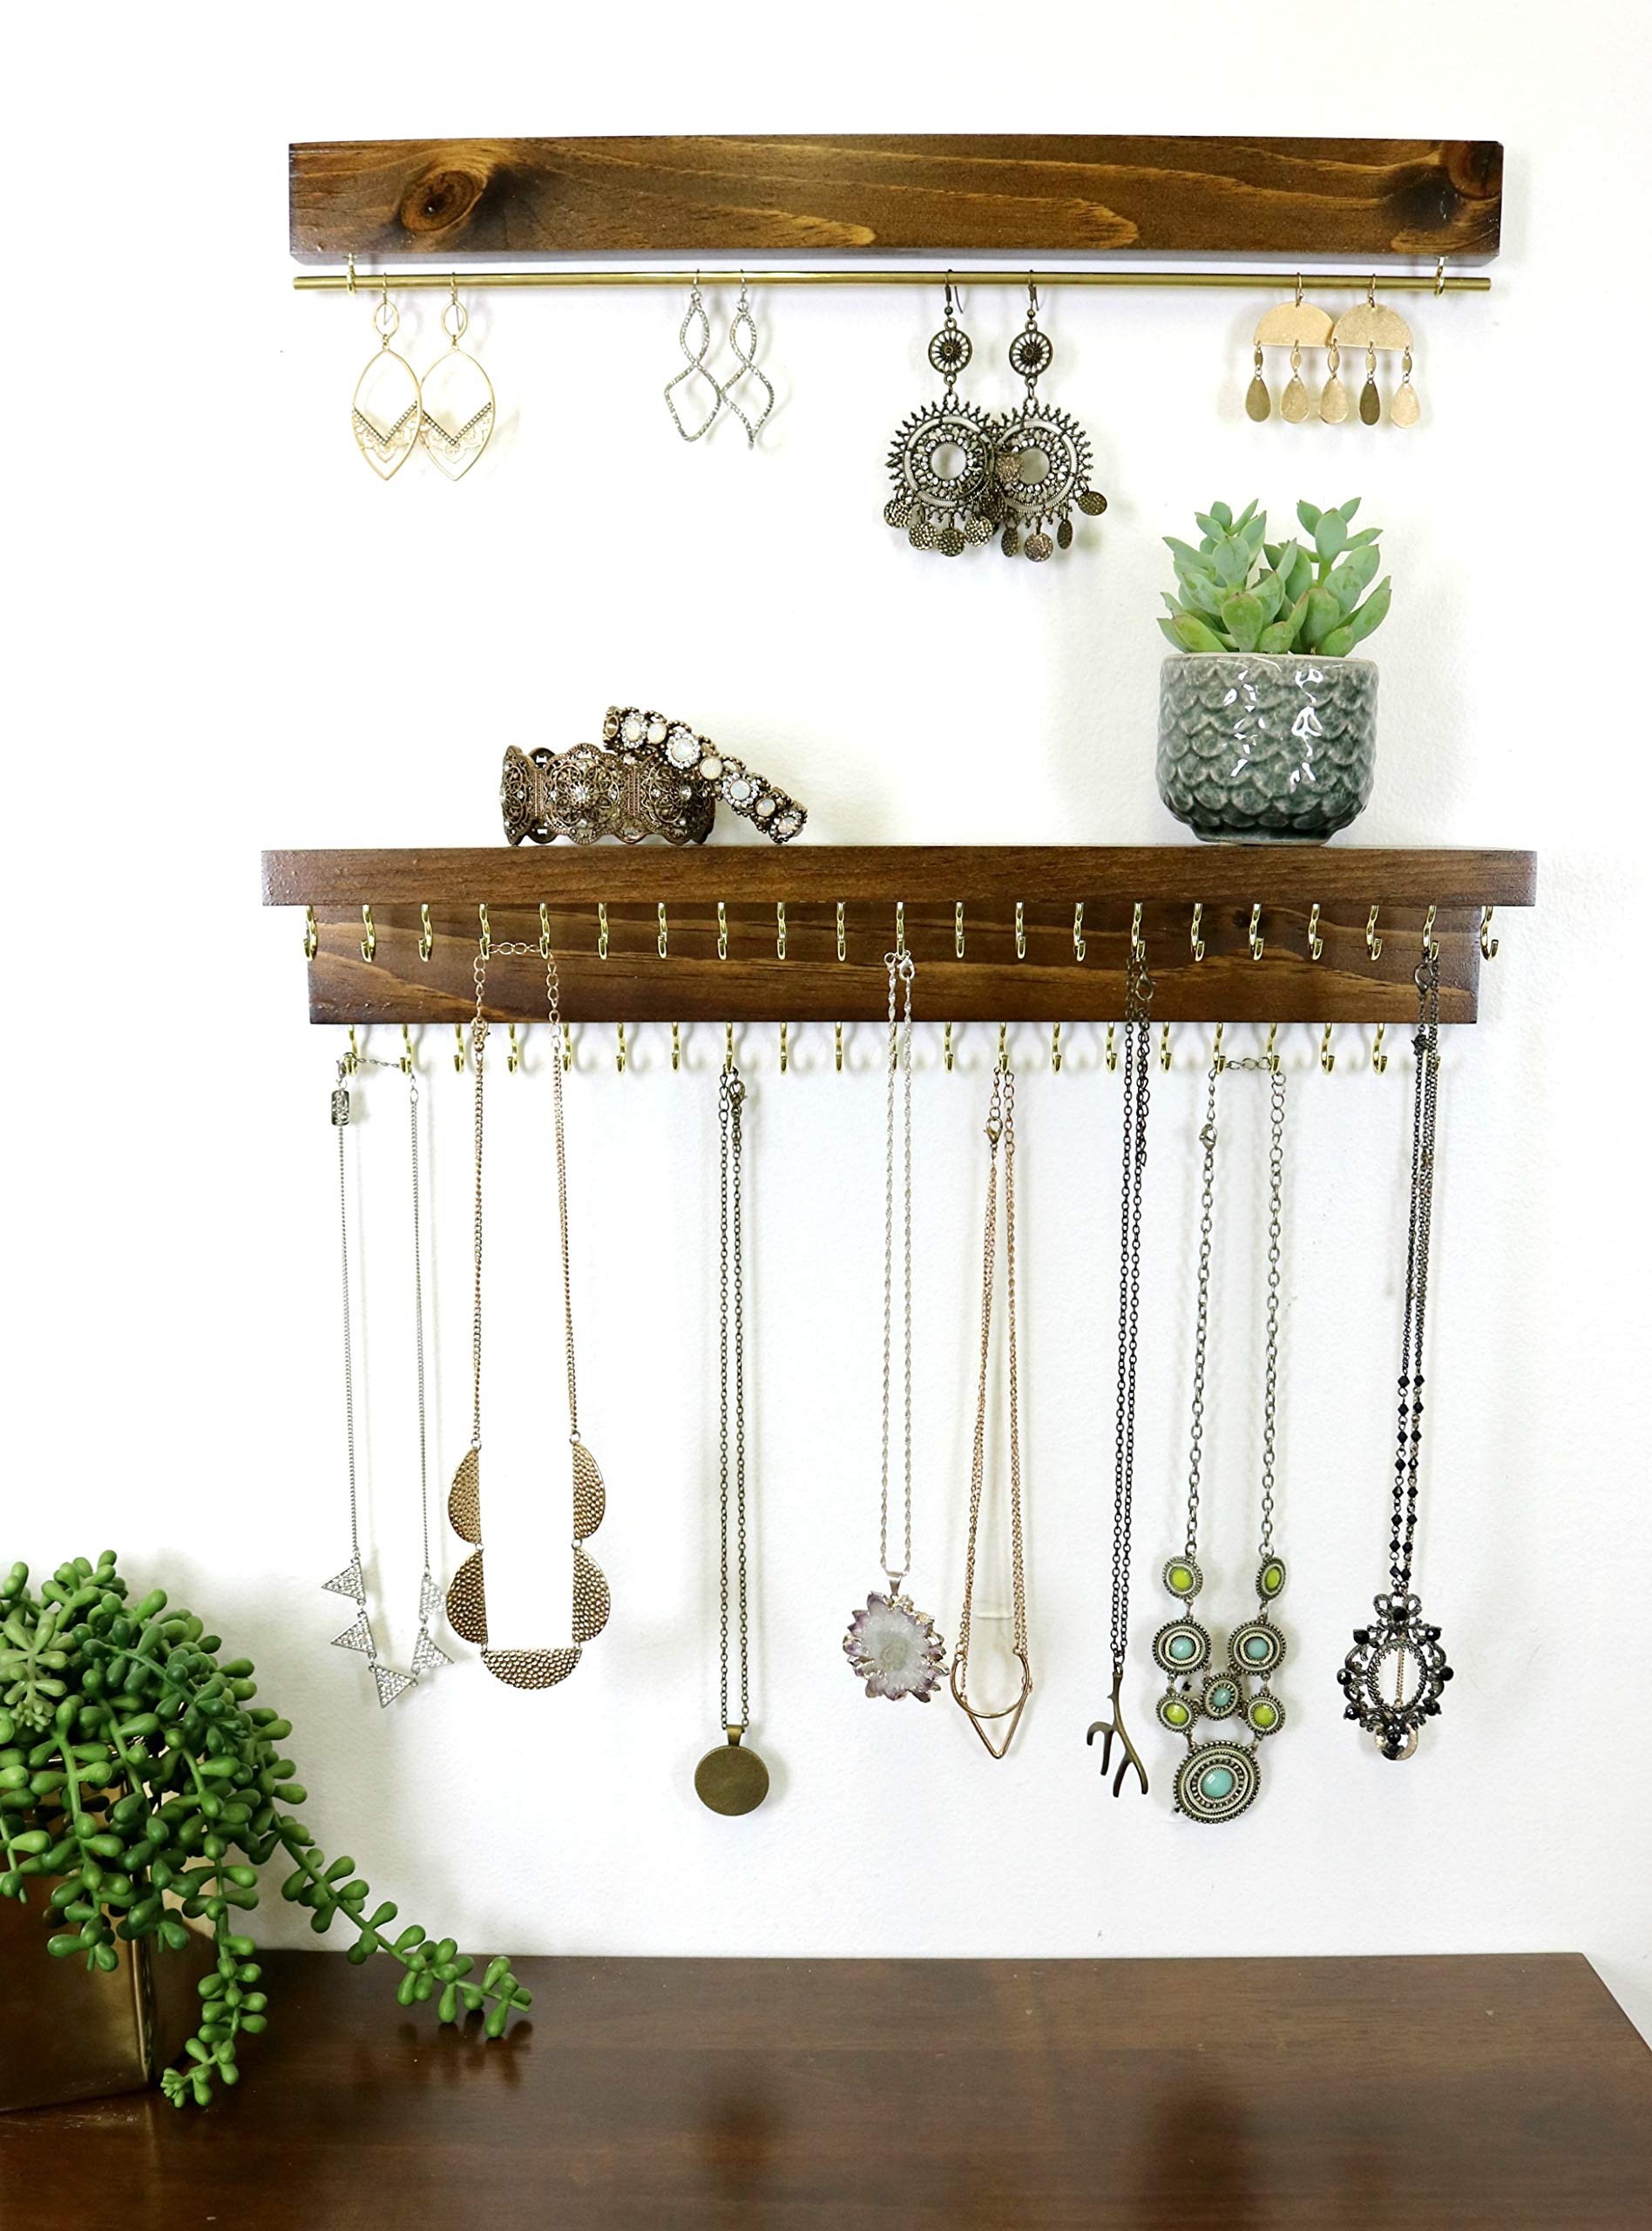 Rustic Jewelry Organizer Wall Mounted   Wooden Wall Mount Holder for Earrings, Necklaces and Other Accessories (16'' Long (Most Popular Size), Stained Dark Walnut/Gold Metal Finish)